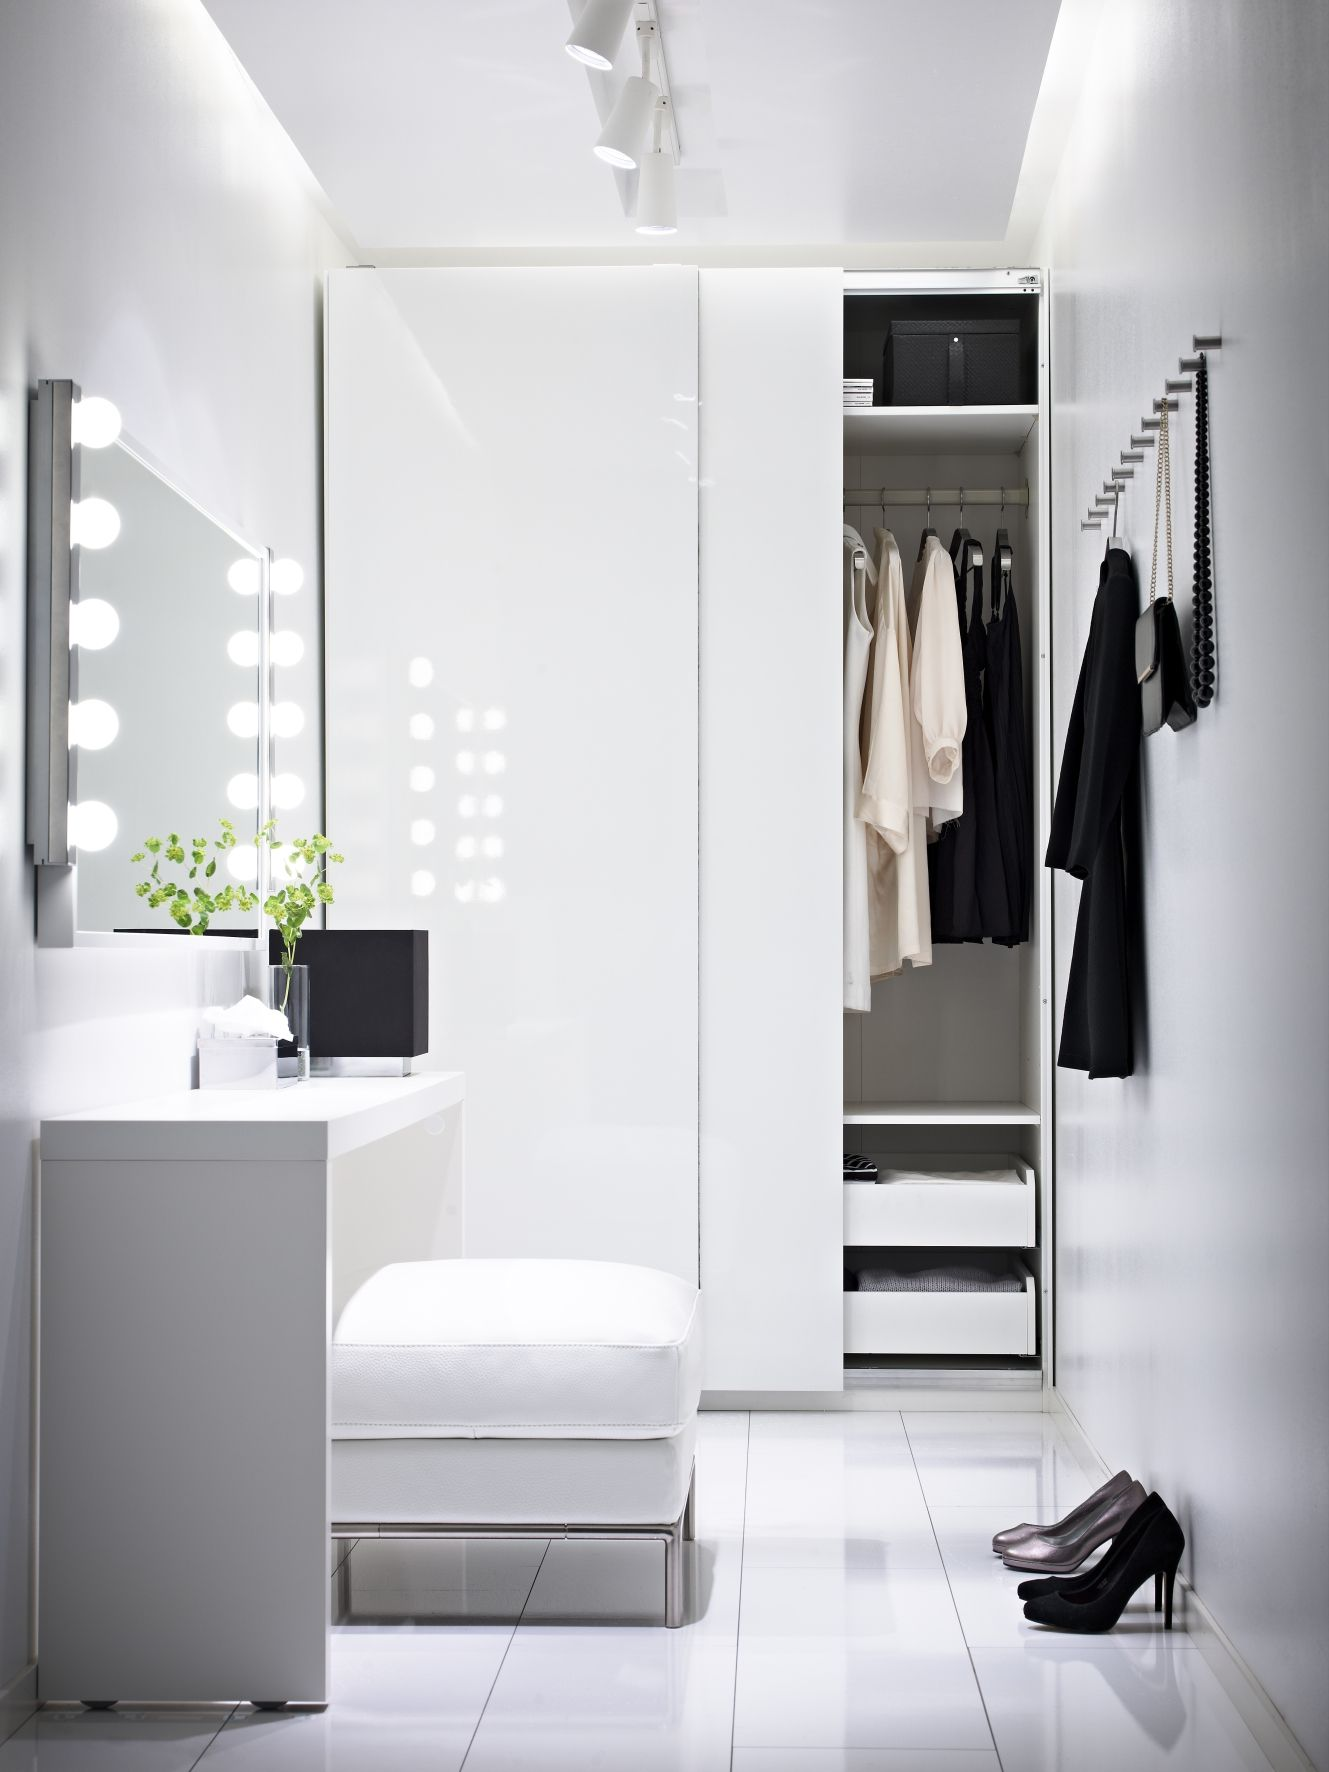 Ikea Pax Room Divider Re Evaluate And Organise Your Clothes This Year With An Ikea Pax